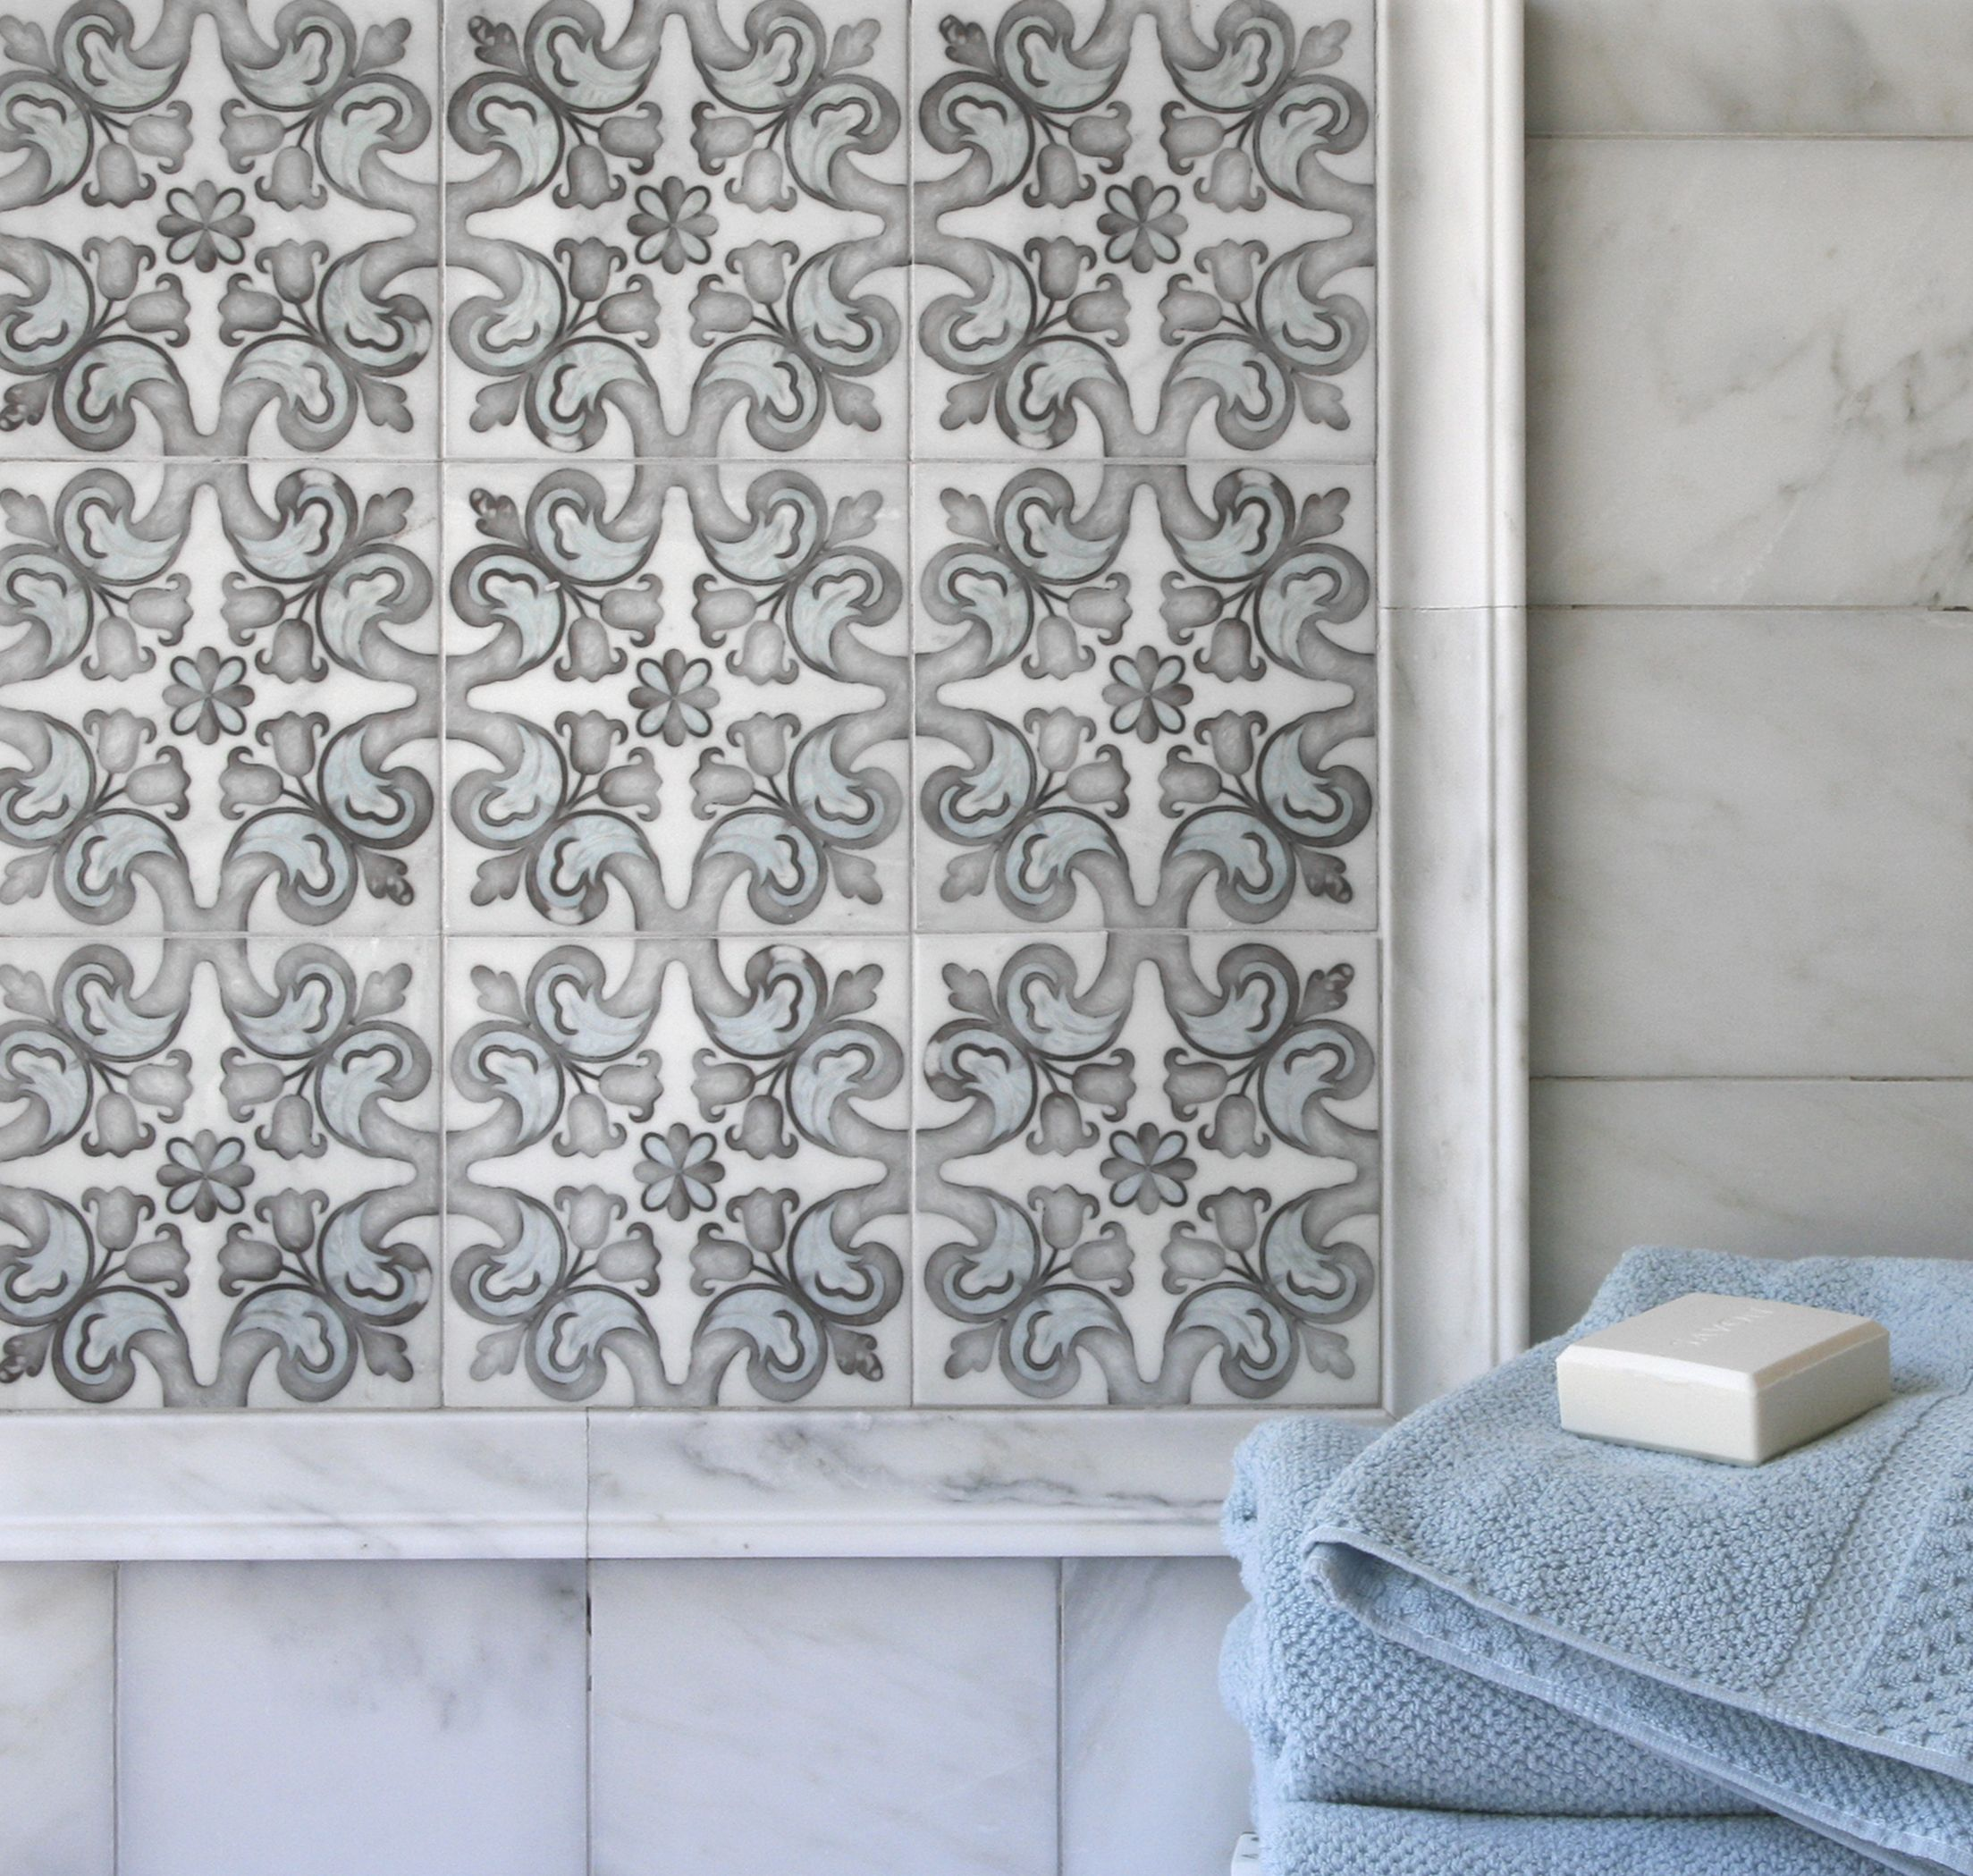 Captivating Marbella Pattern, Part Of The Artisan Stone Tile Collection, Available On  Carrara And Ready Design